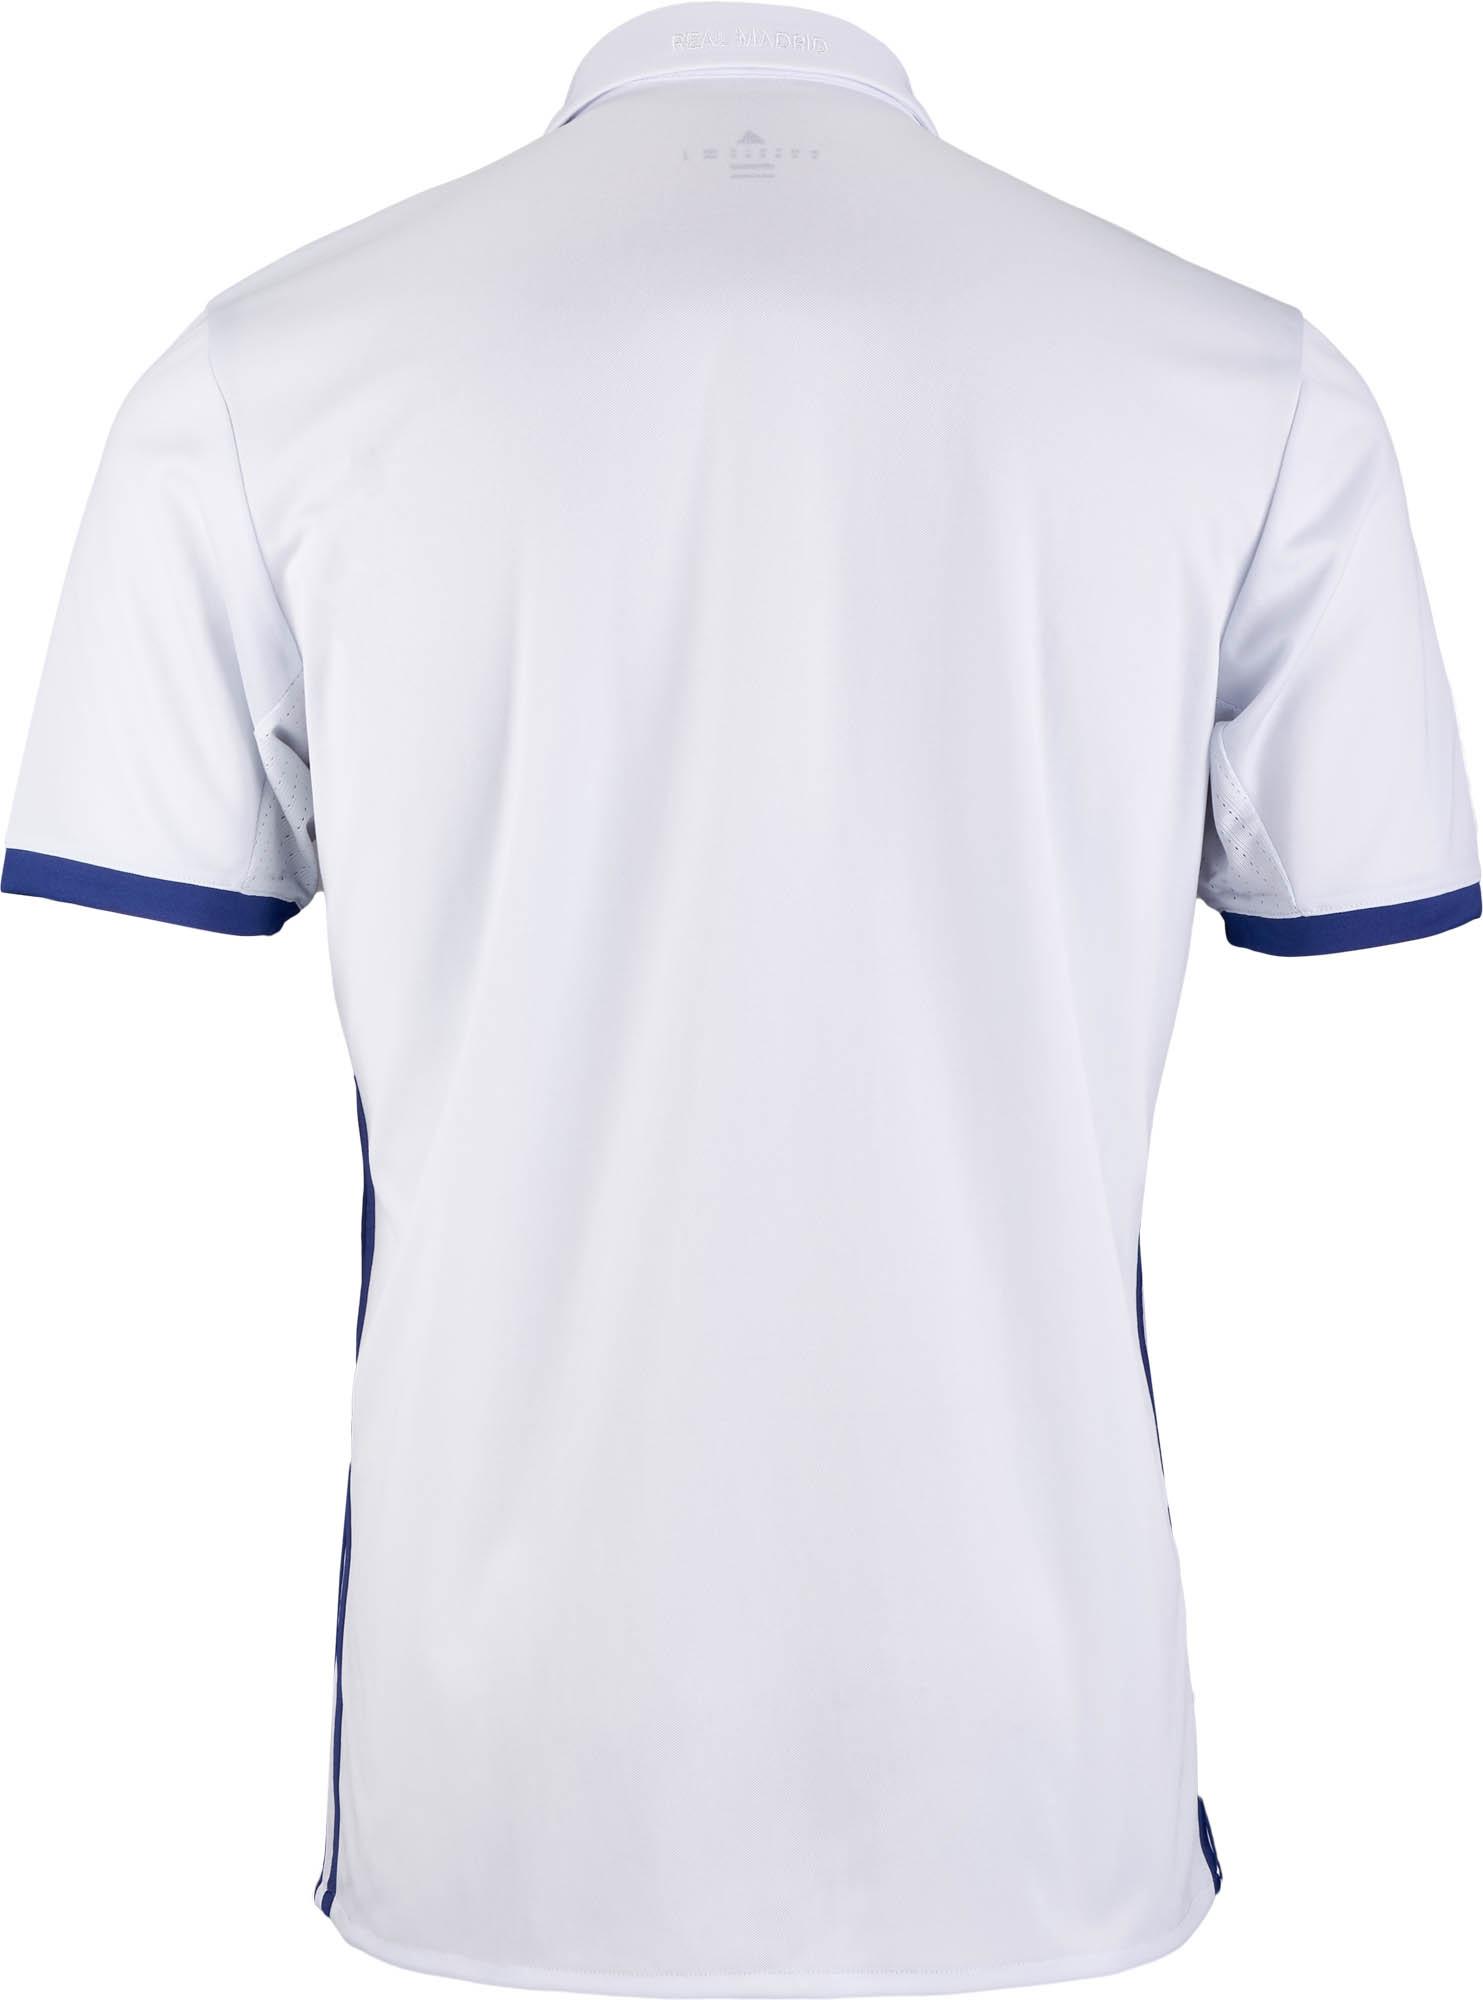 release date 0c973 e7c84 Real Madrid Polo T Shirt India | Toffee Art